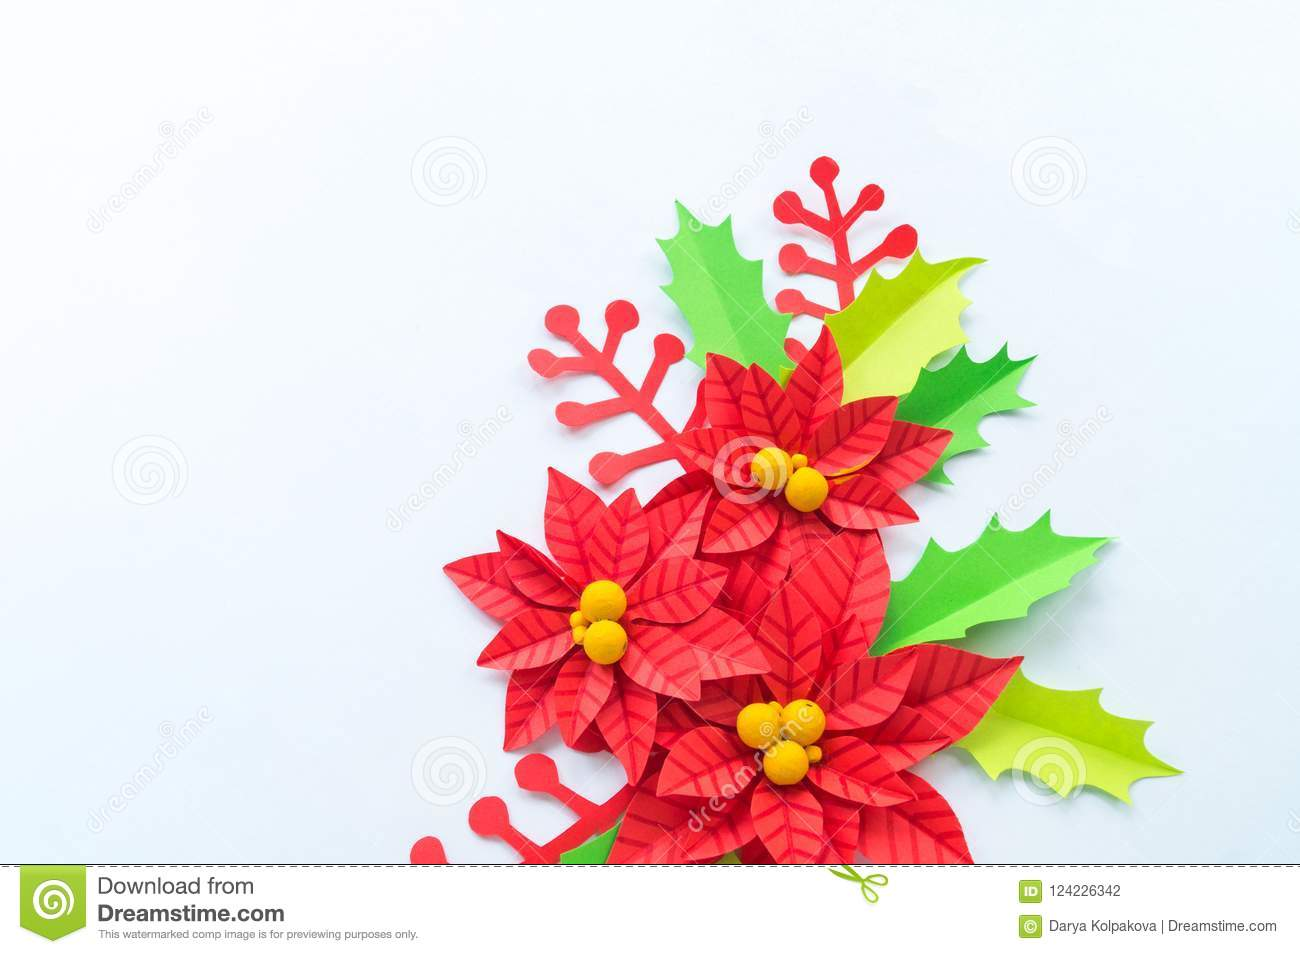 Giant Poinsettia Svg Cutting Files Paper Flower Beautiful